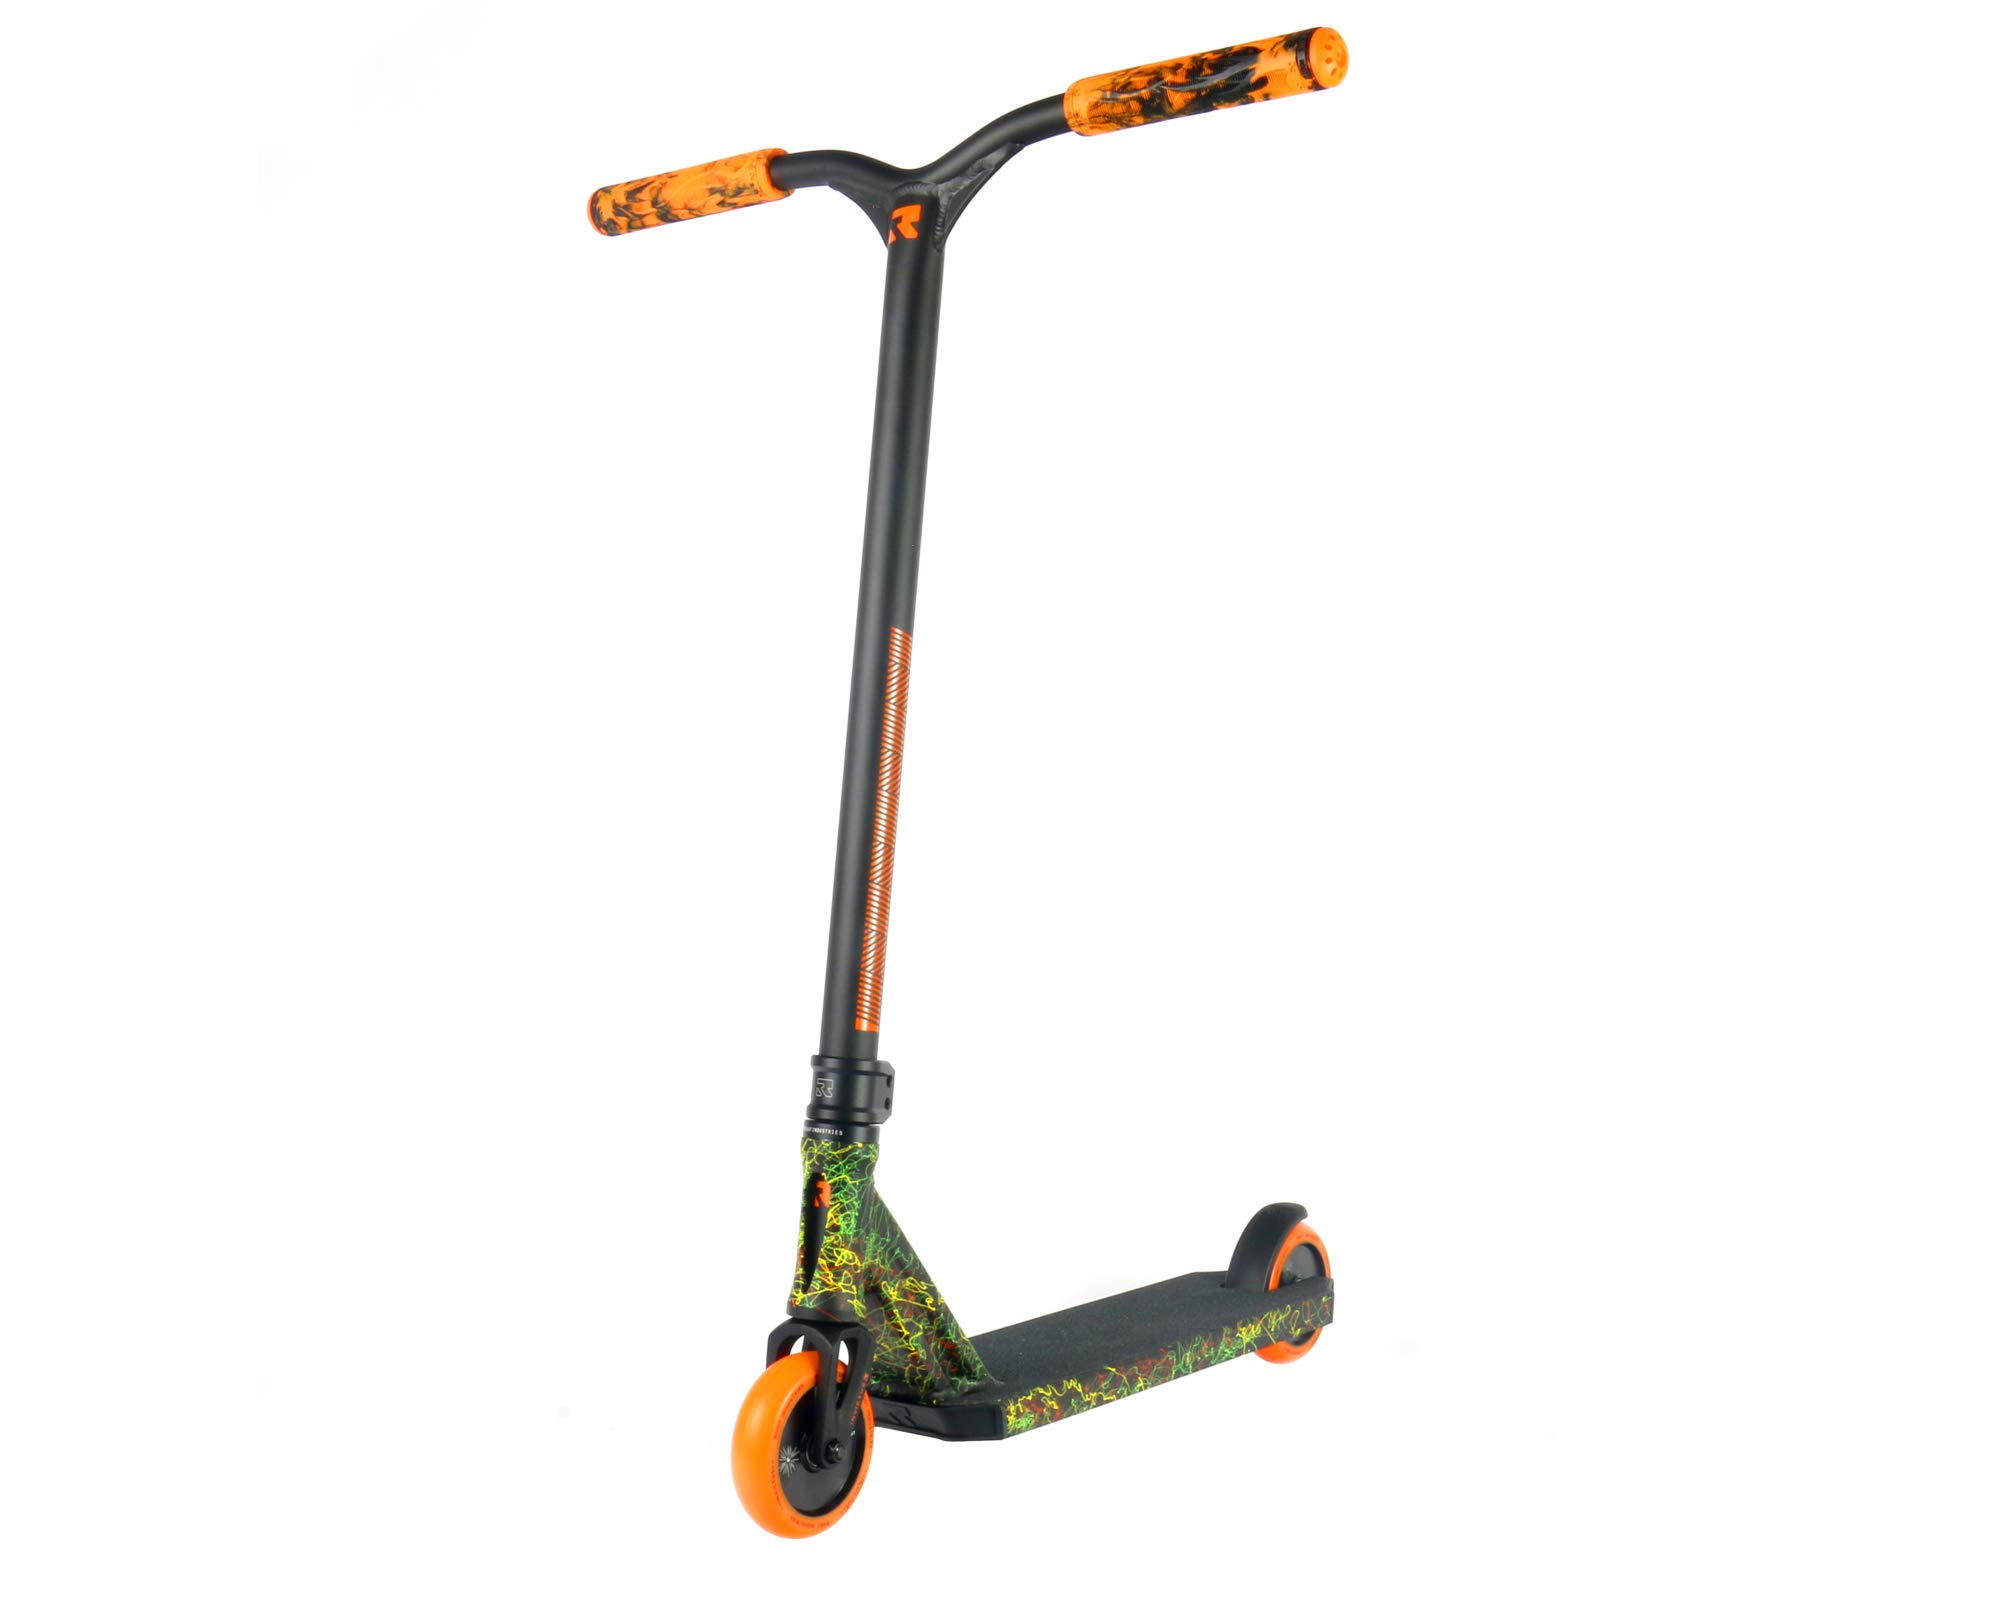 Root Industries Invictus Complete Scooter - Trick/Stunt Kick Scooter - Perfect for Beginner and Intermediate Scooter Riders - Perfect for Kids Ages 8 and Older - Premium Scooter Parts (Blk/Org/YLW)